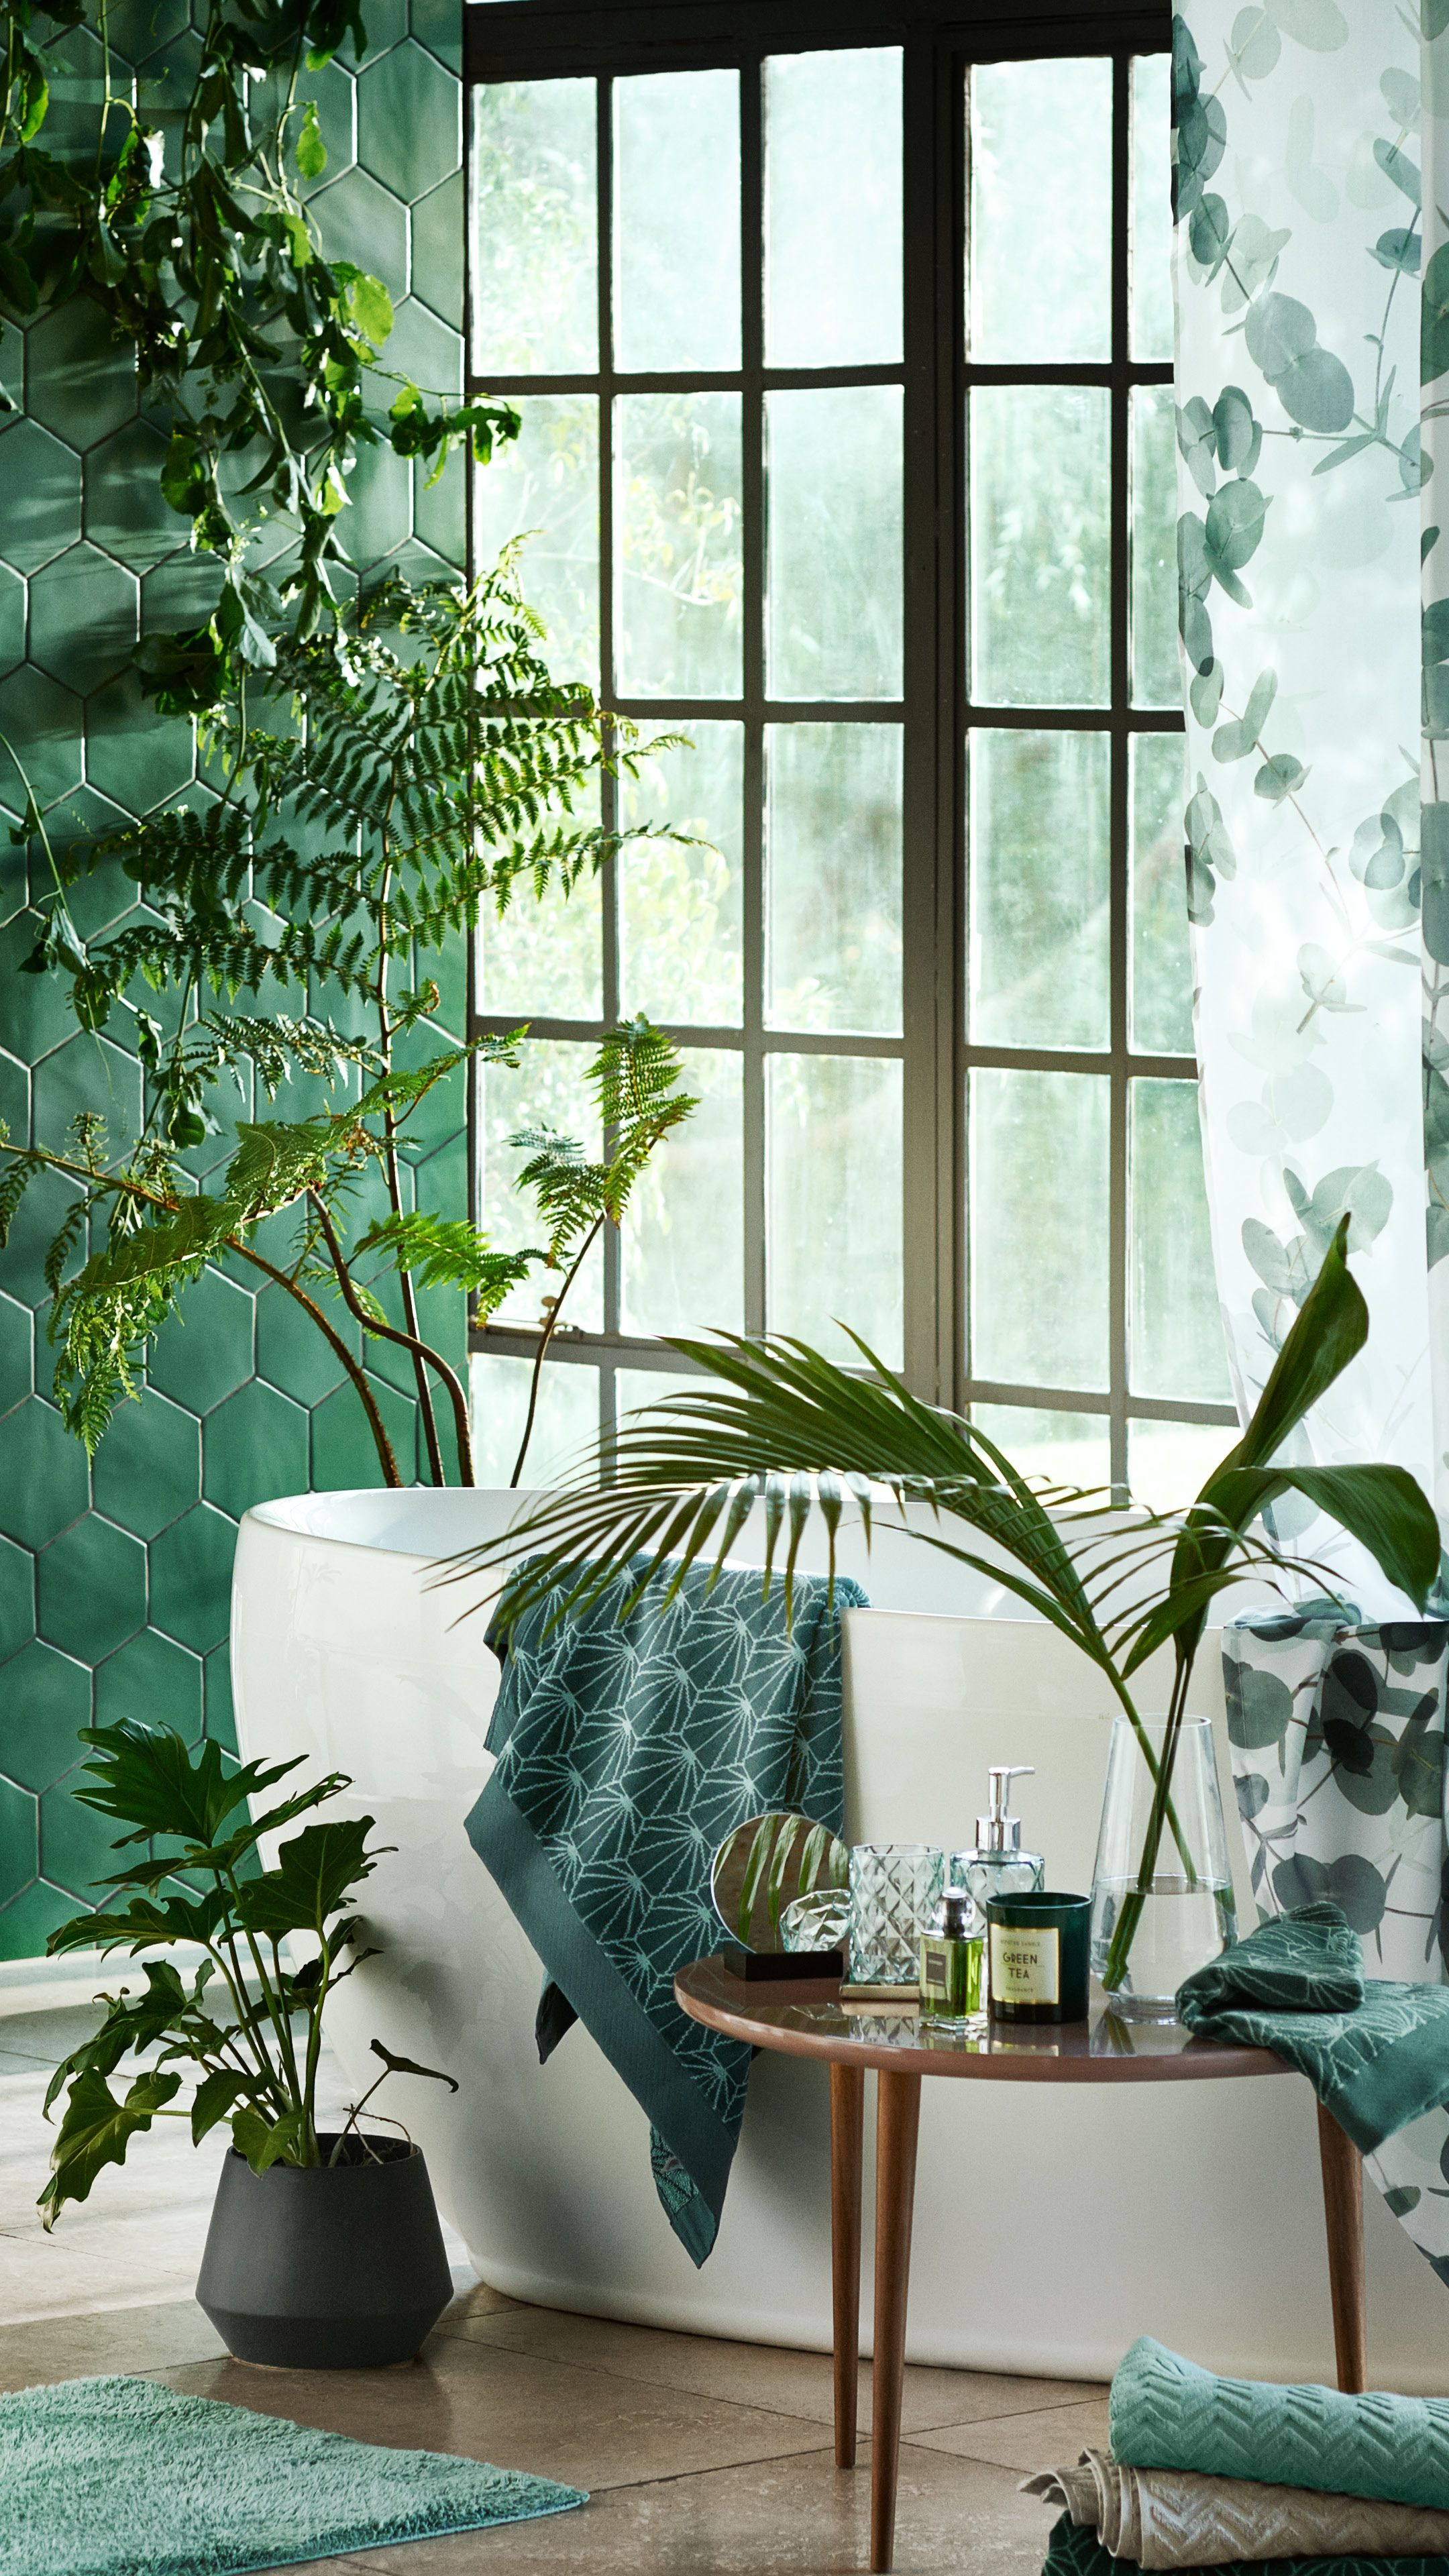 Meuble Salle De Bain Boheme ~ liven up any room with new home accessories and green tones h m